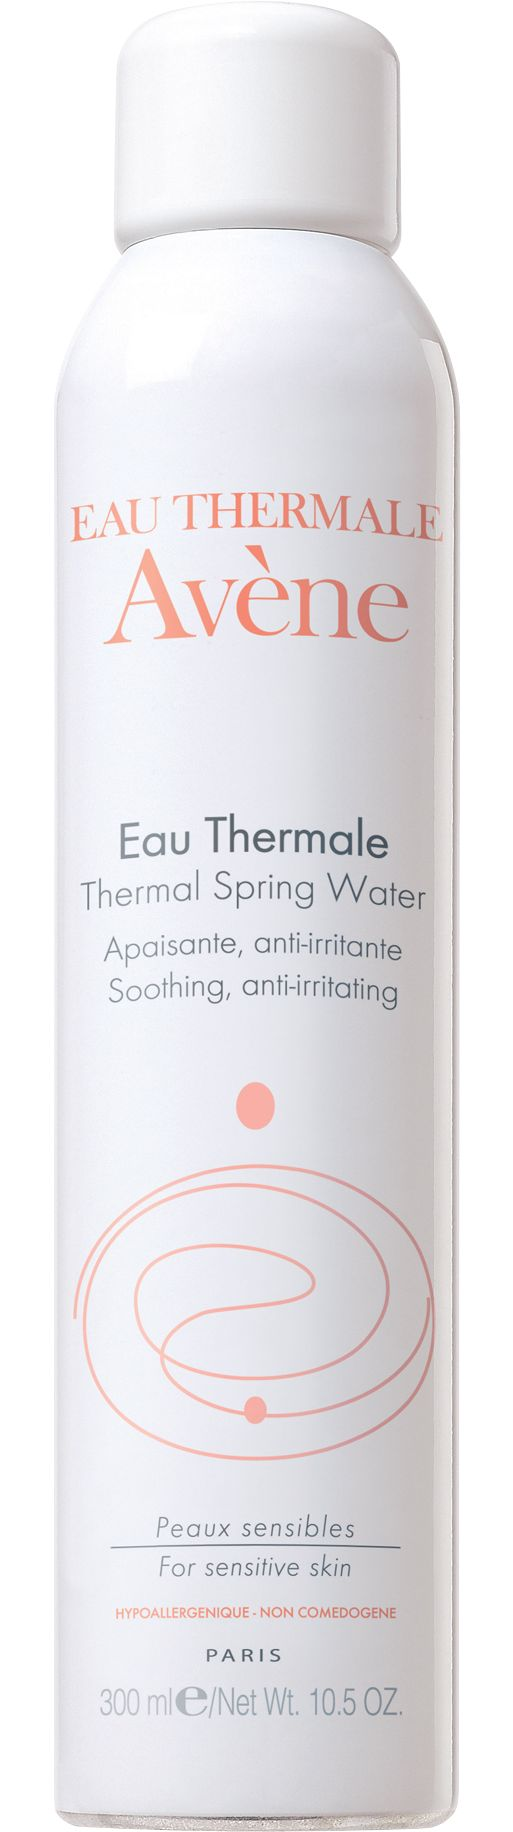 Avene Thermale Spring Water Spray It's supposed to be good for eczema